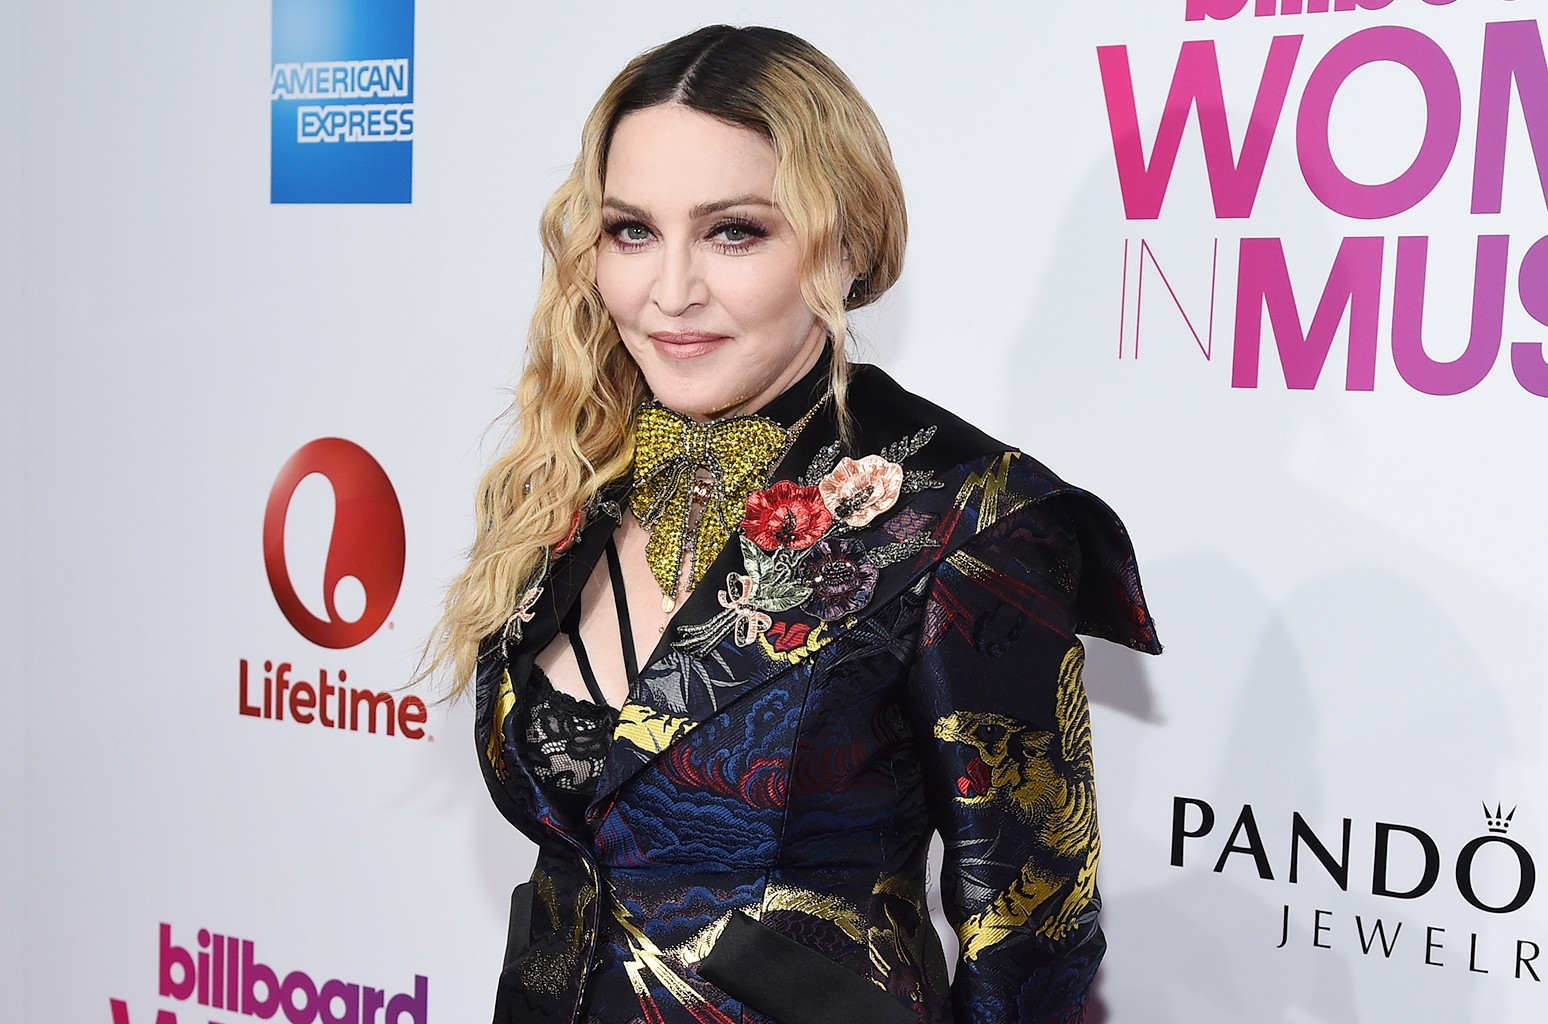 Madonna attends Billboard Women In Music 2016 at Pier 36 on Dec. 9, 2016 in New York City.